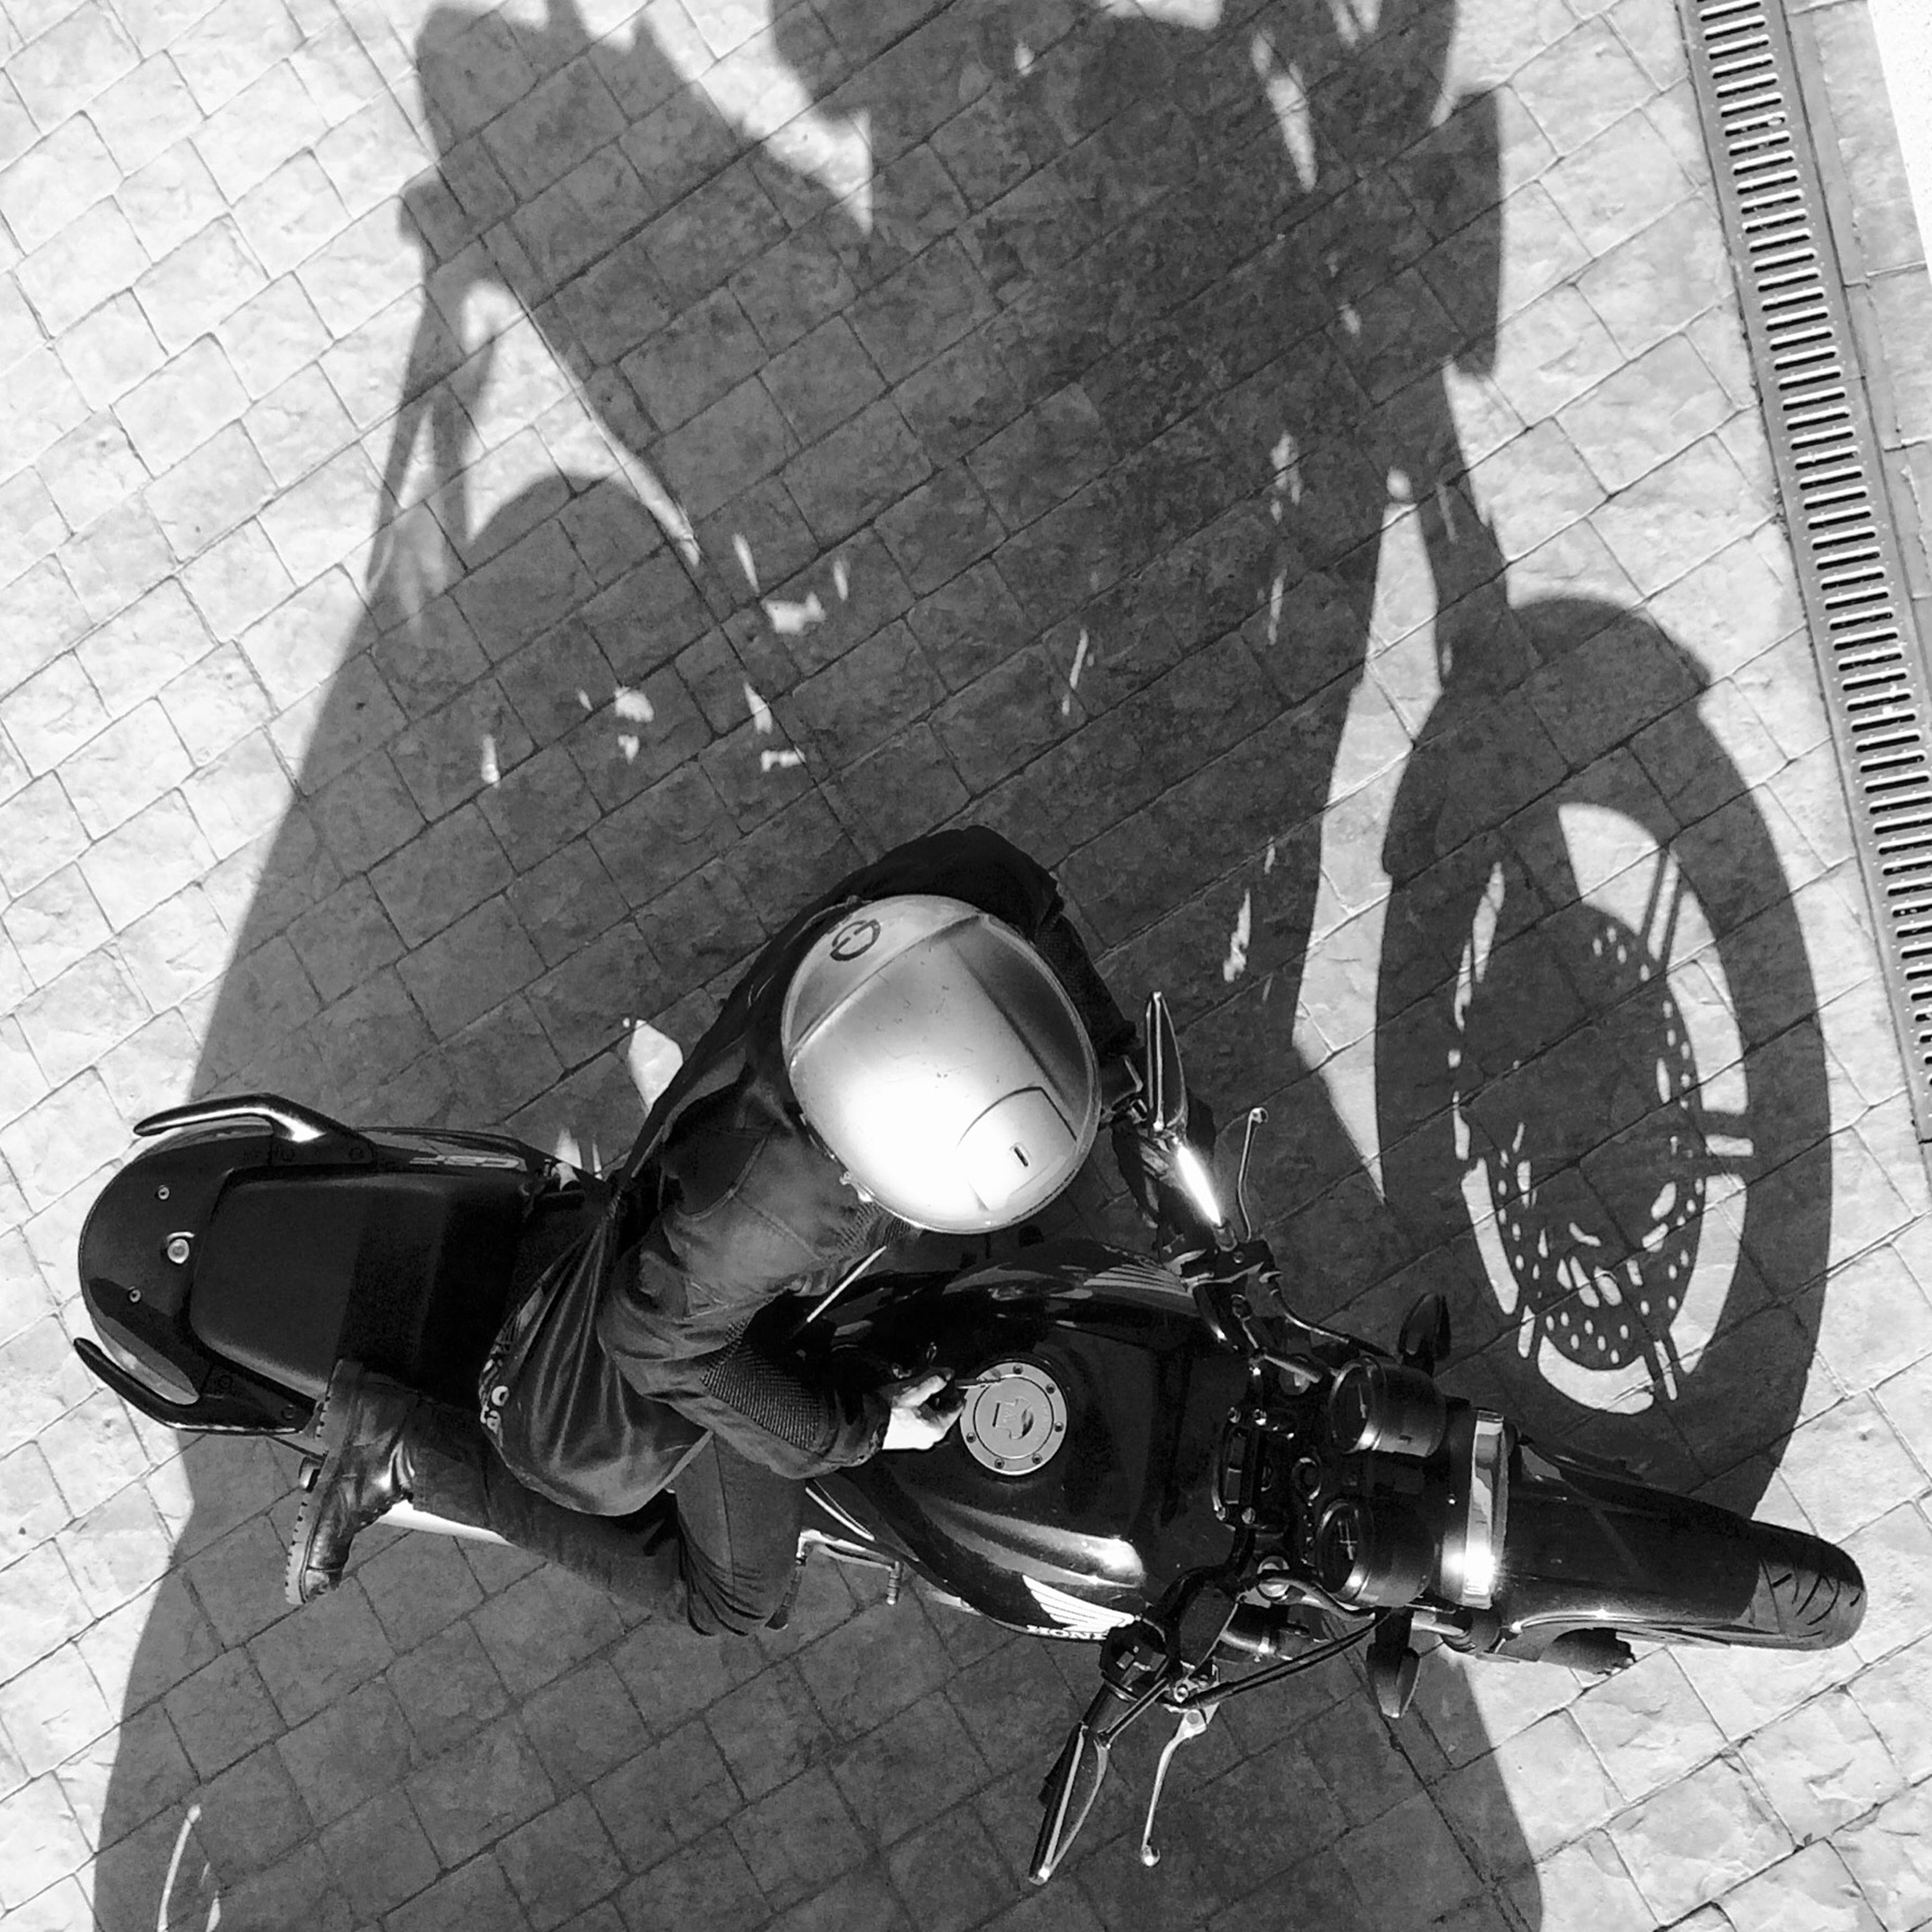 street, lifestyles, bicycle, men, high angle view, leisure activity, outdoors, land vehicle, day, transportation, shadow, holding, standing, sidewalk, sunlight, casual clothing, road, shoe